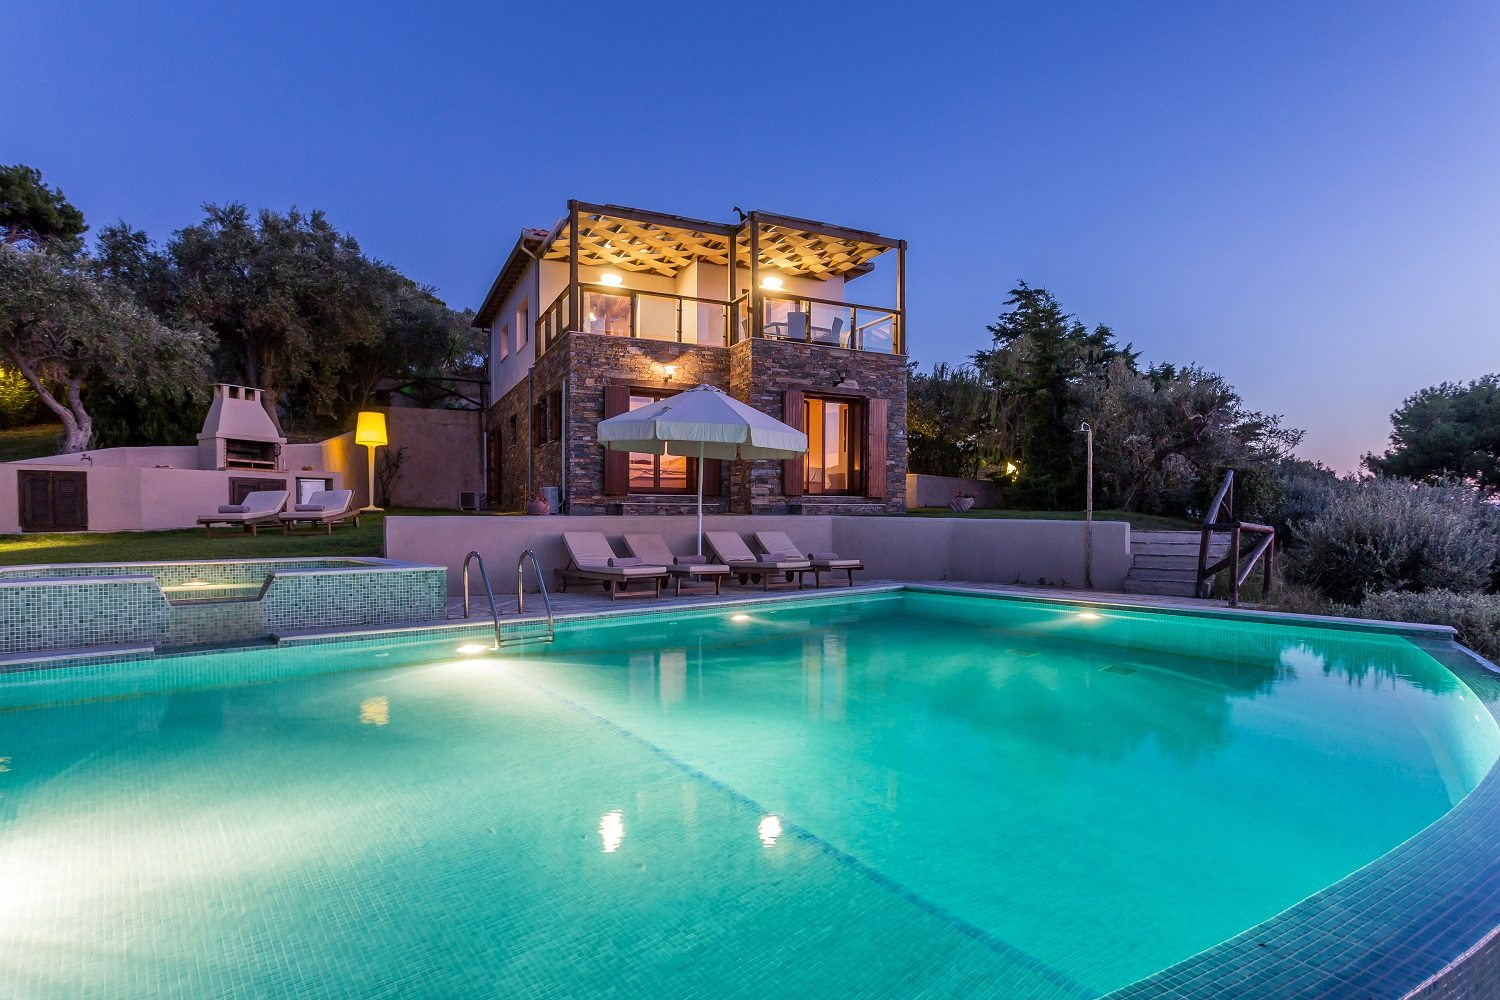 Greece Luxury Real Estate - Homes for Sale